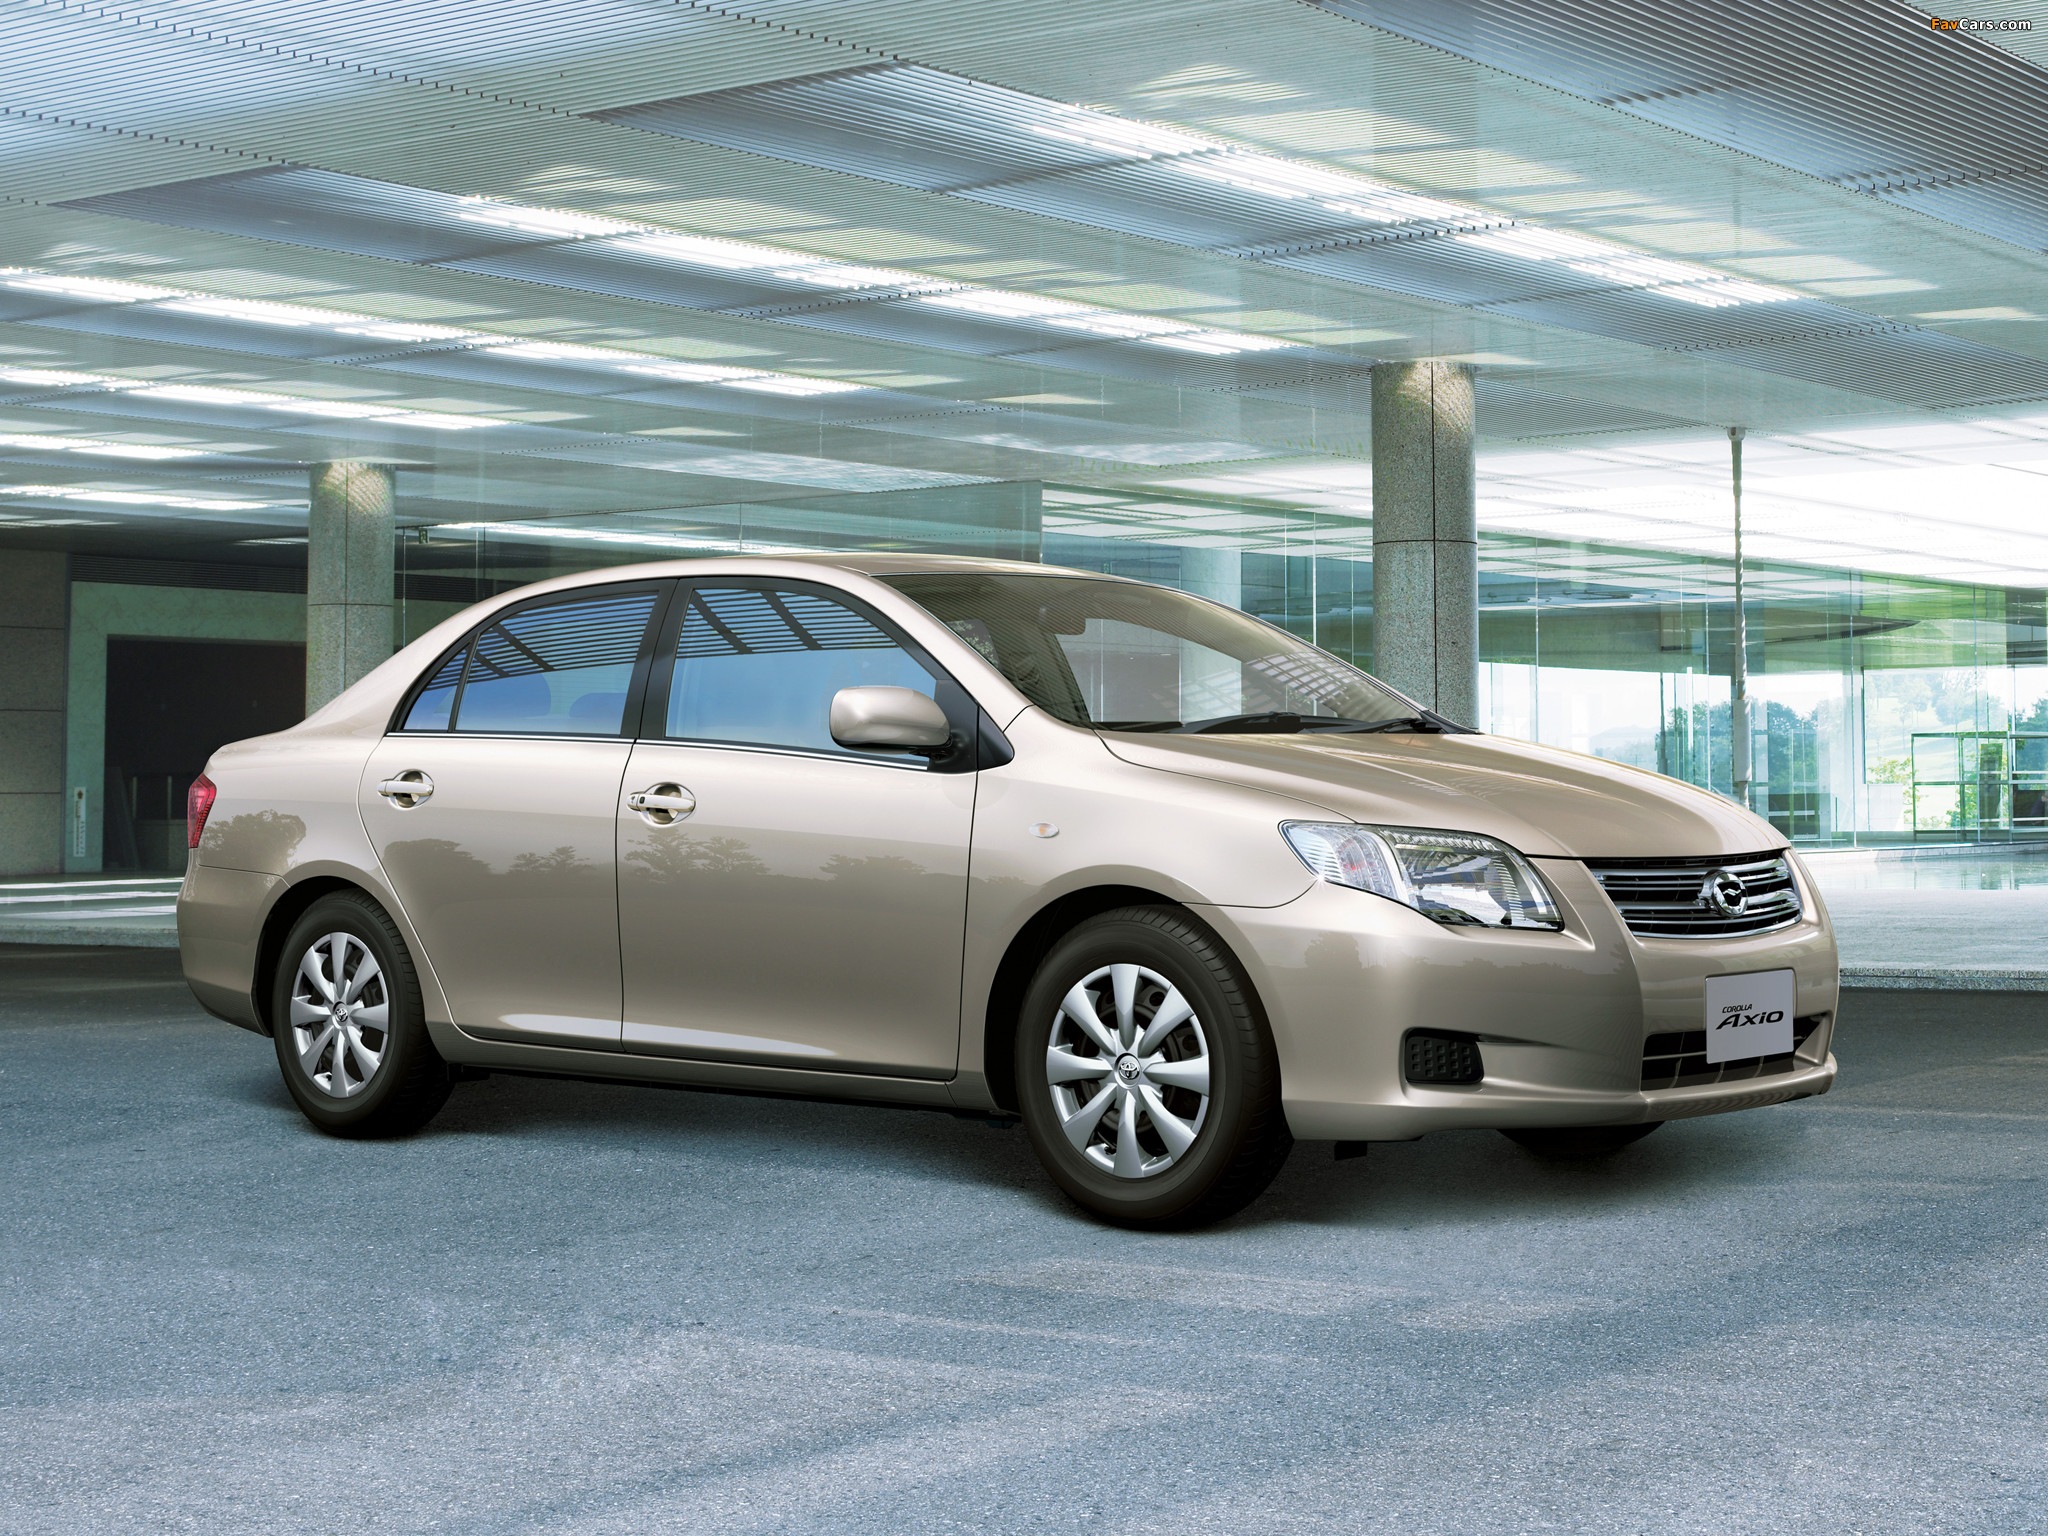 toyota corolla wallpapers. Black Bedroom Furniture Sets. Home Design Ideas